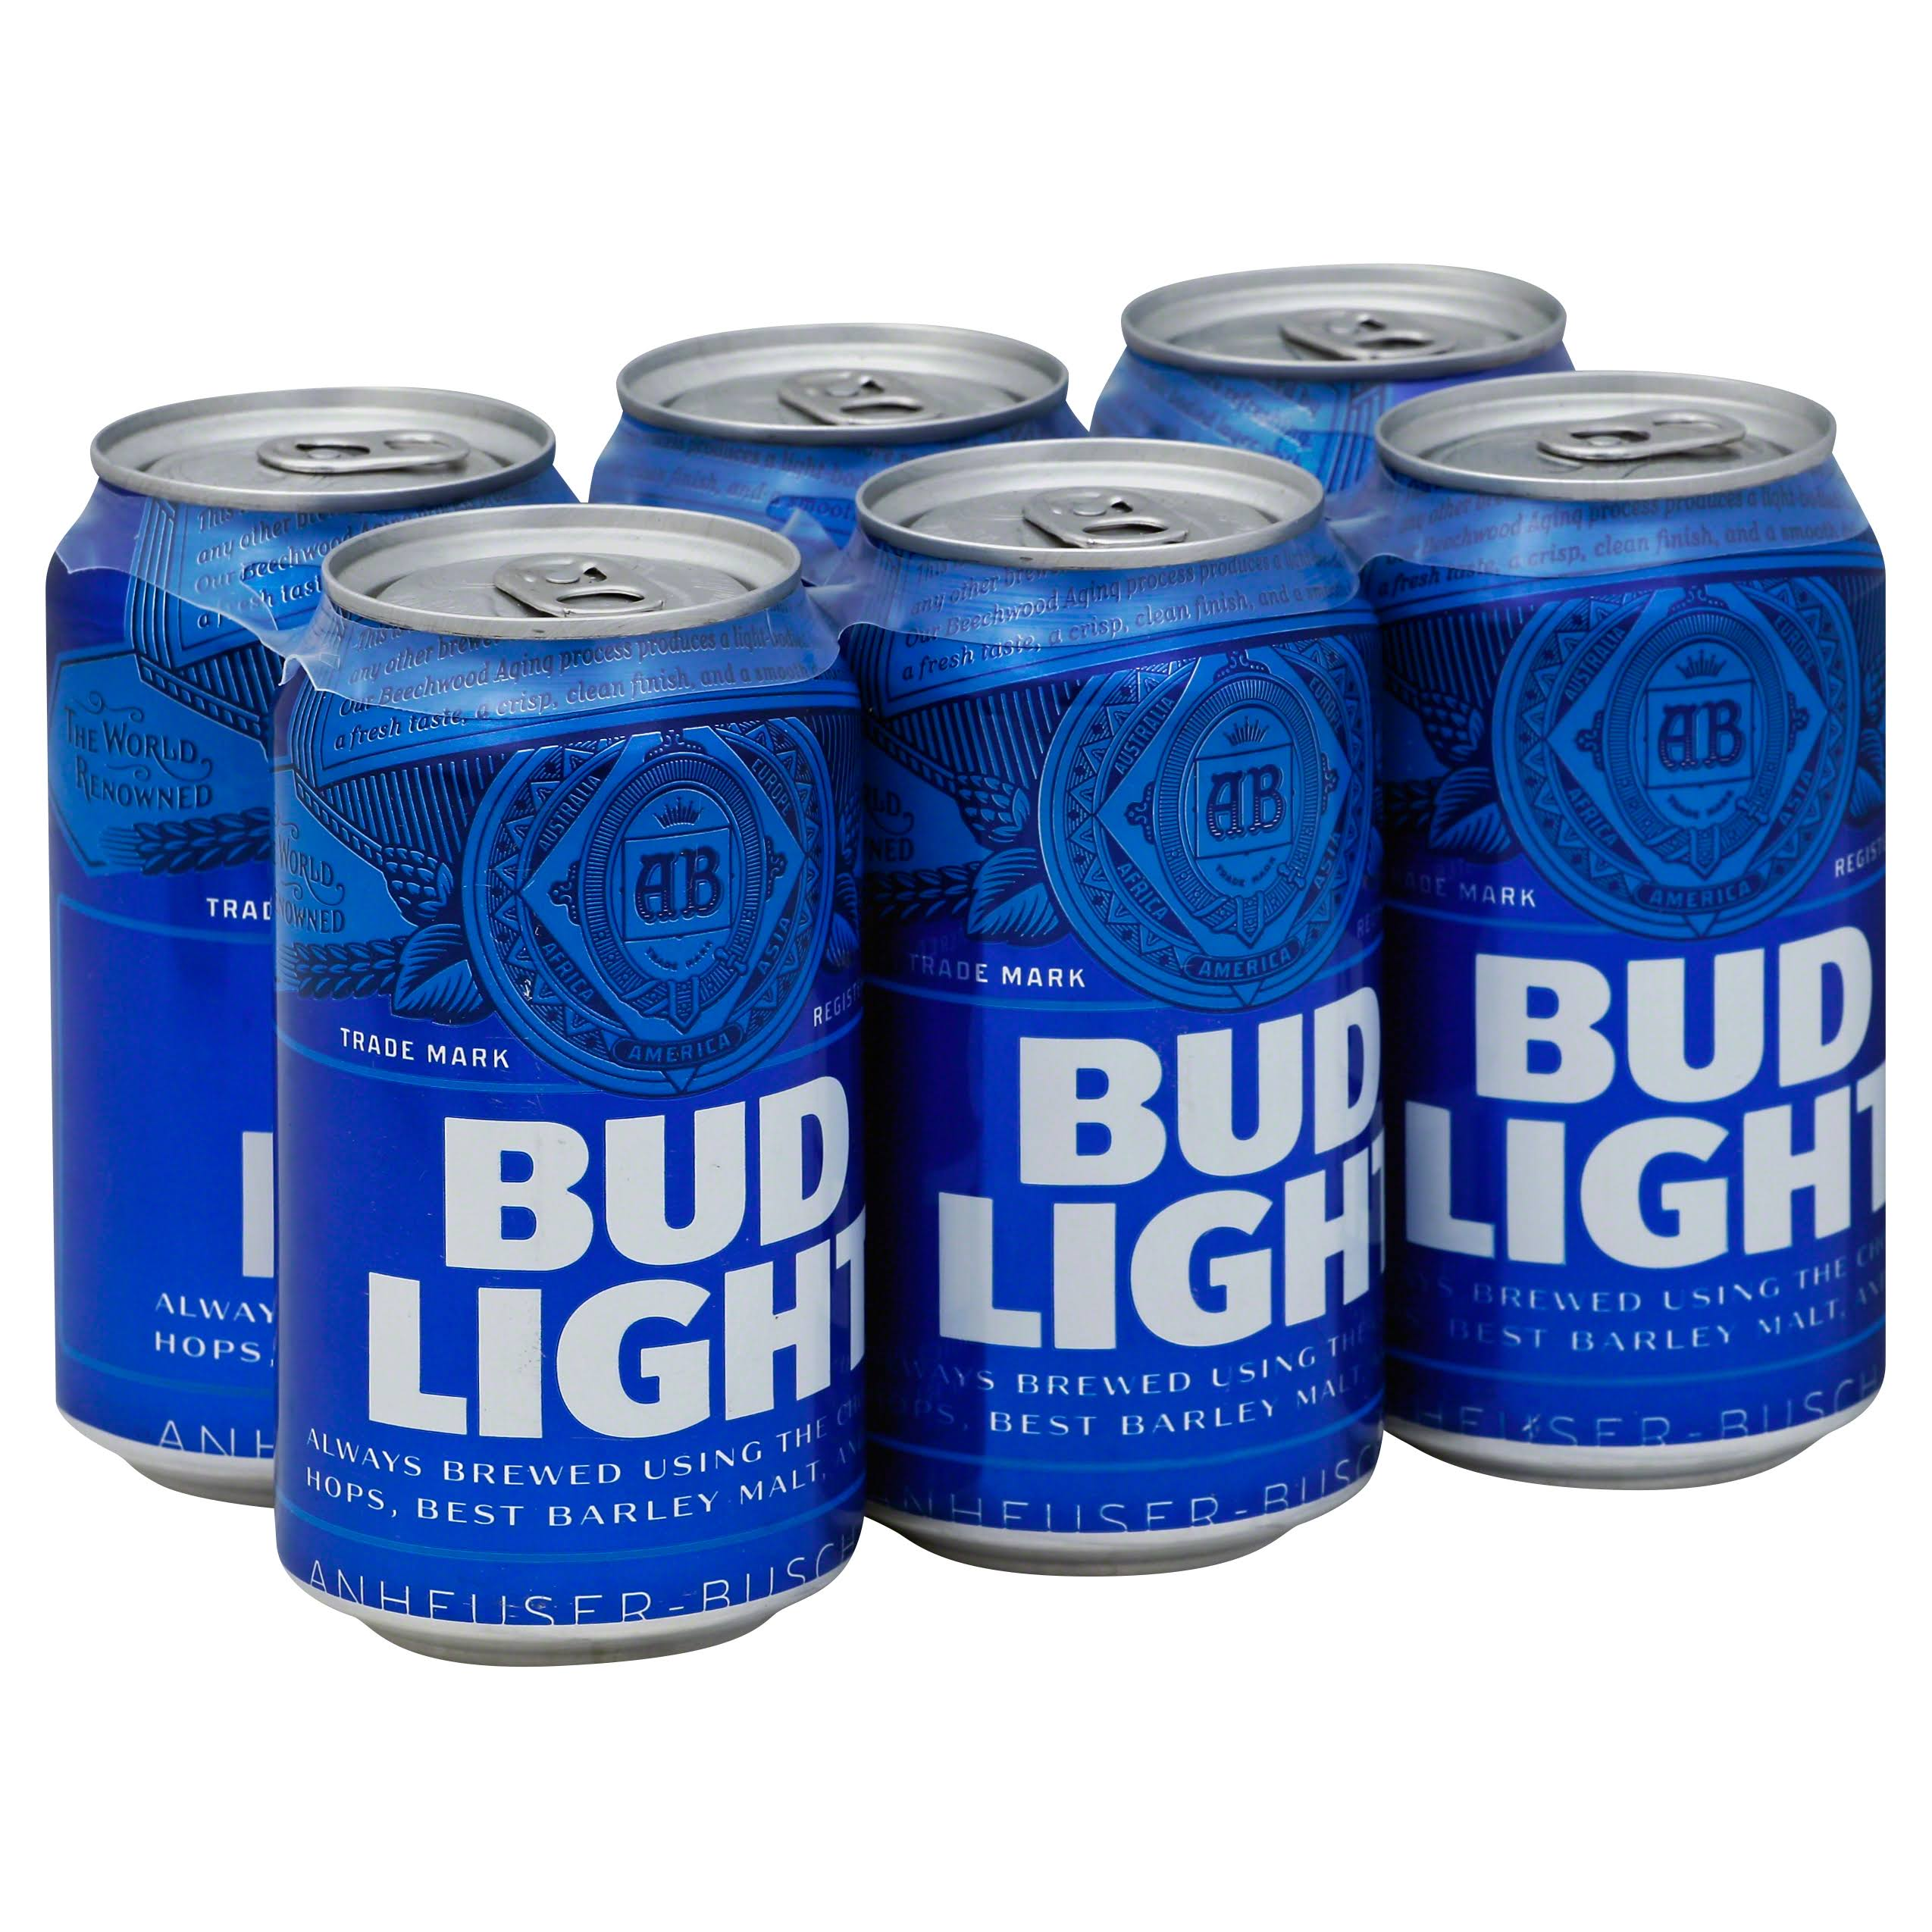 Bud Light Beer, Lager - 6 pack, 12 fl oz cans